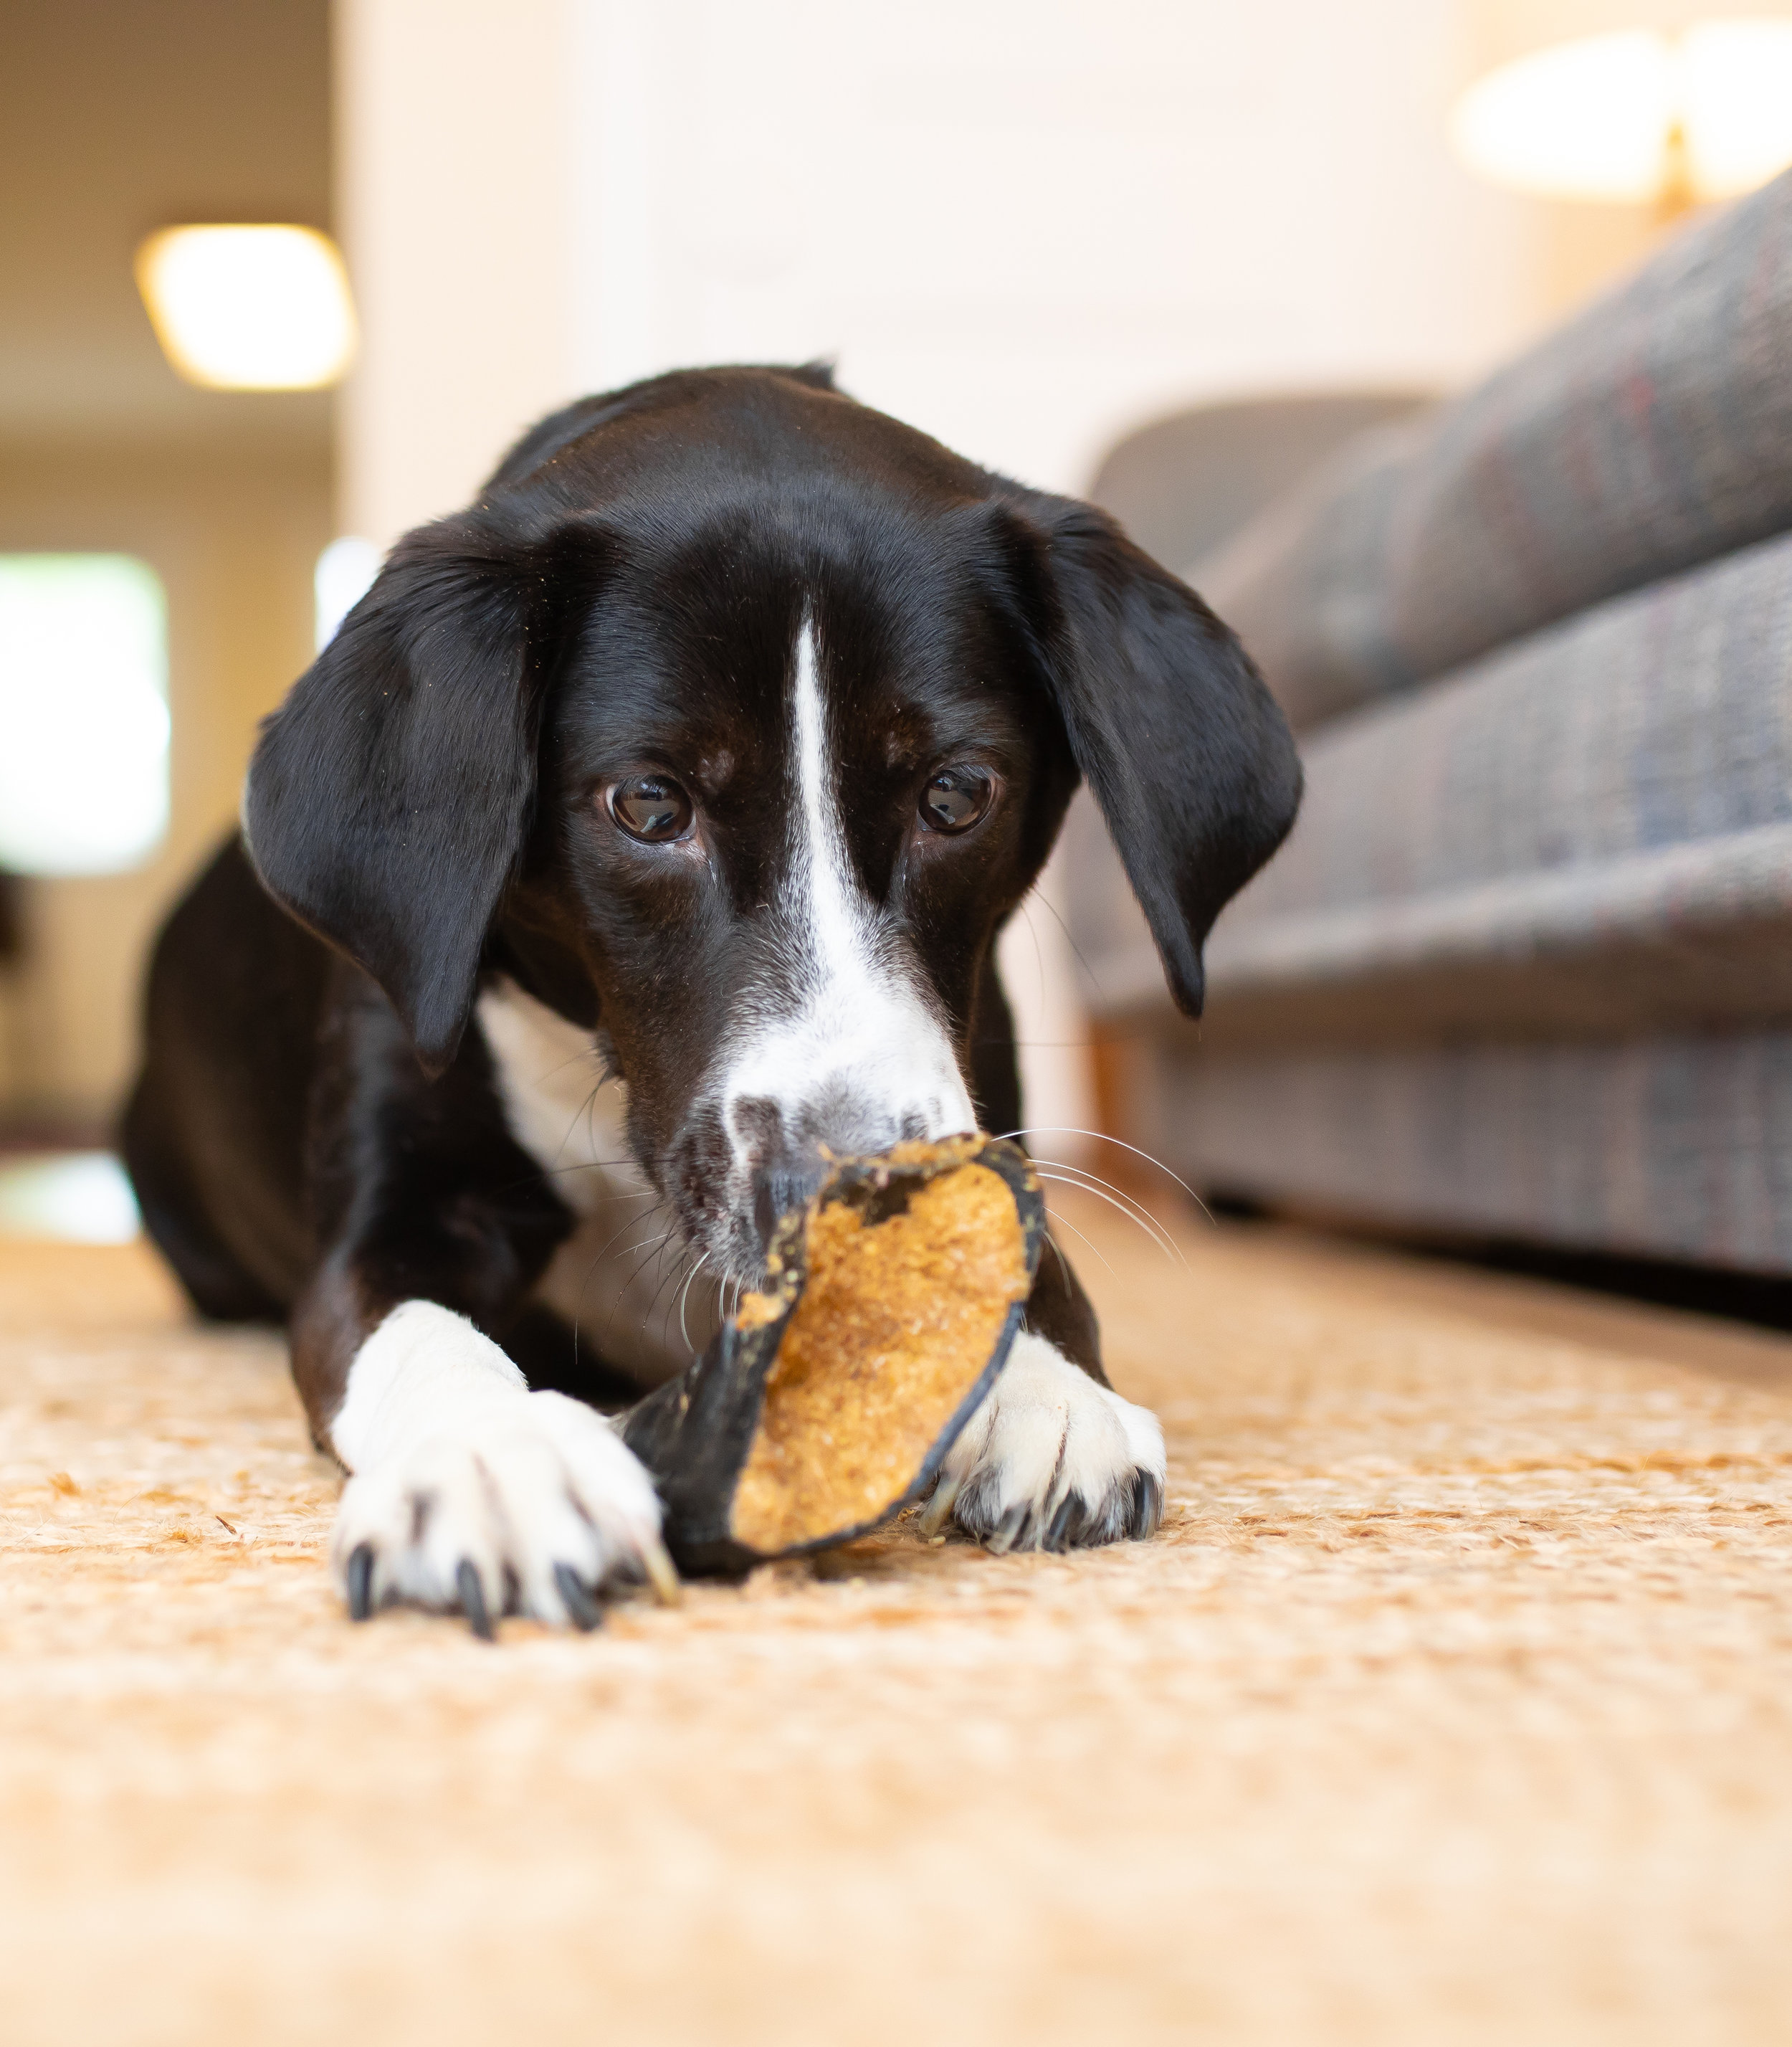 refill with your dog's favorite fillings to keep the fun going! -